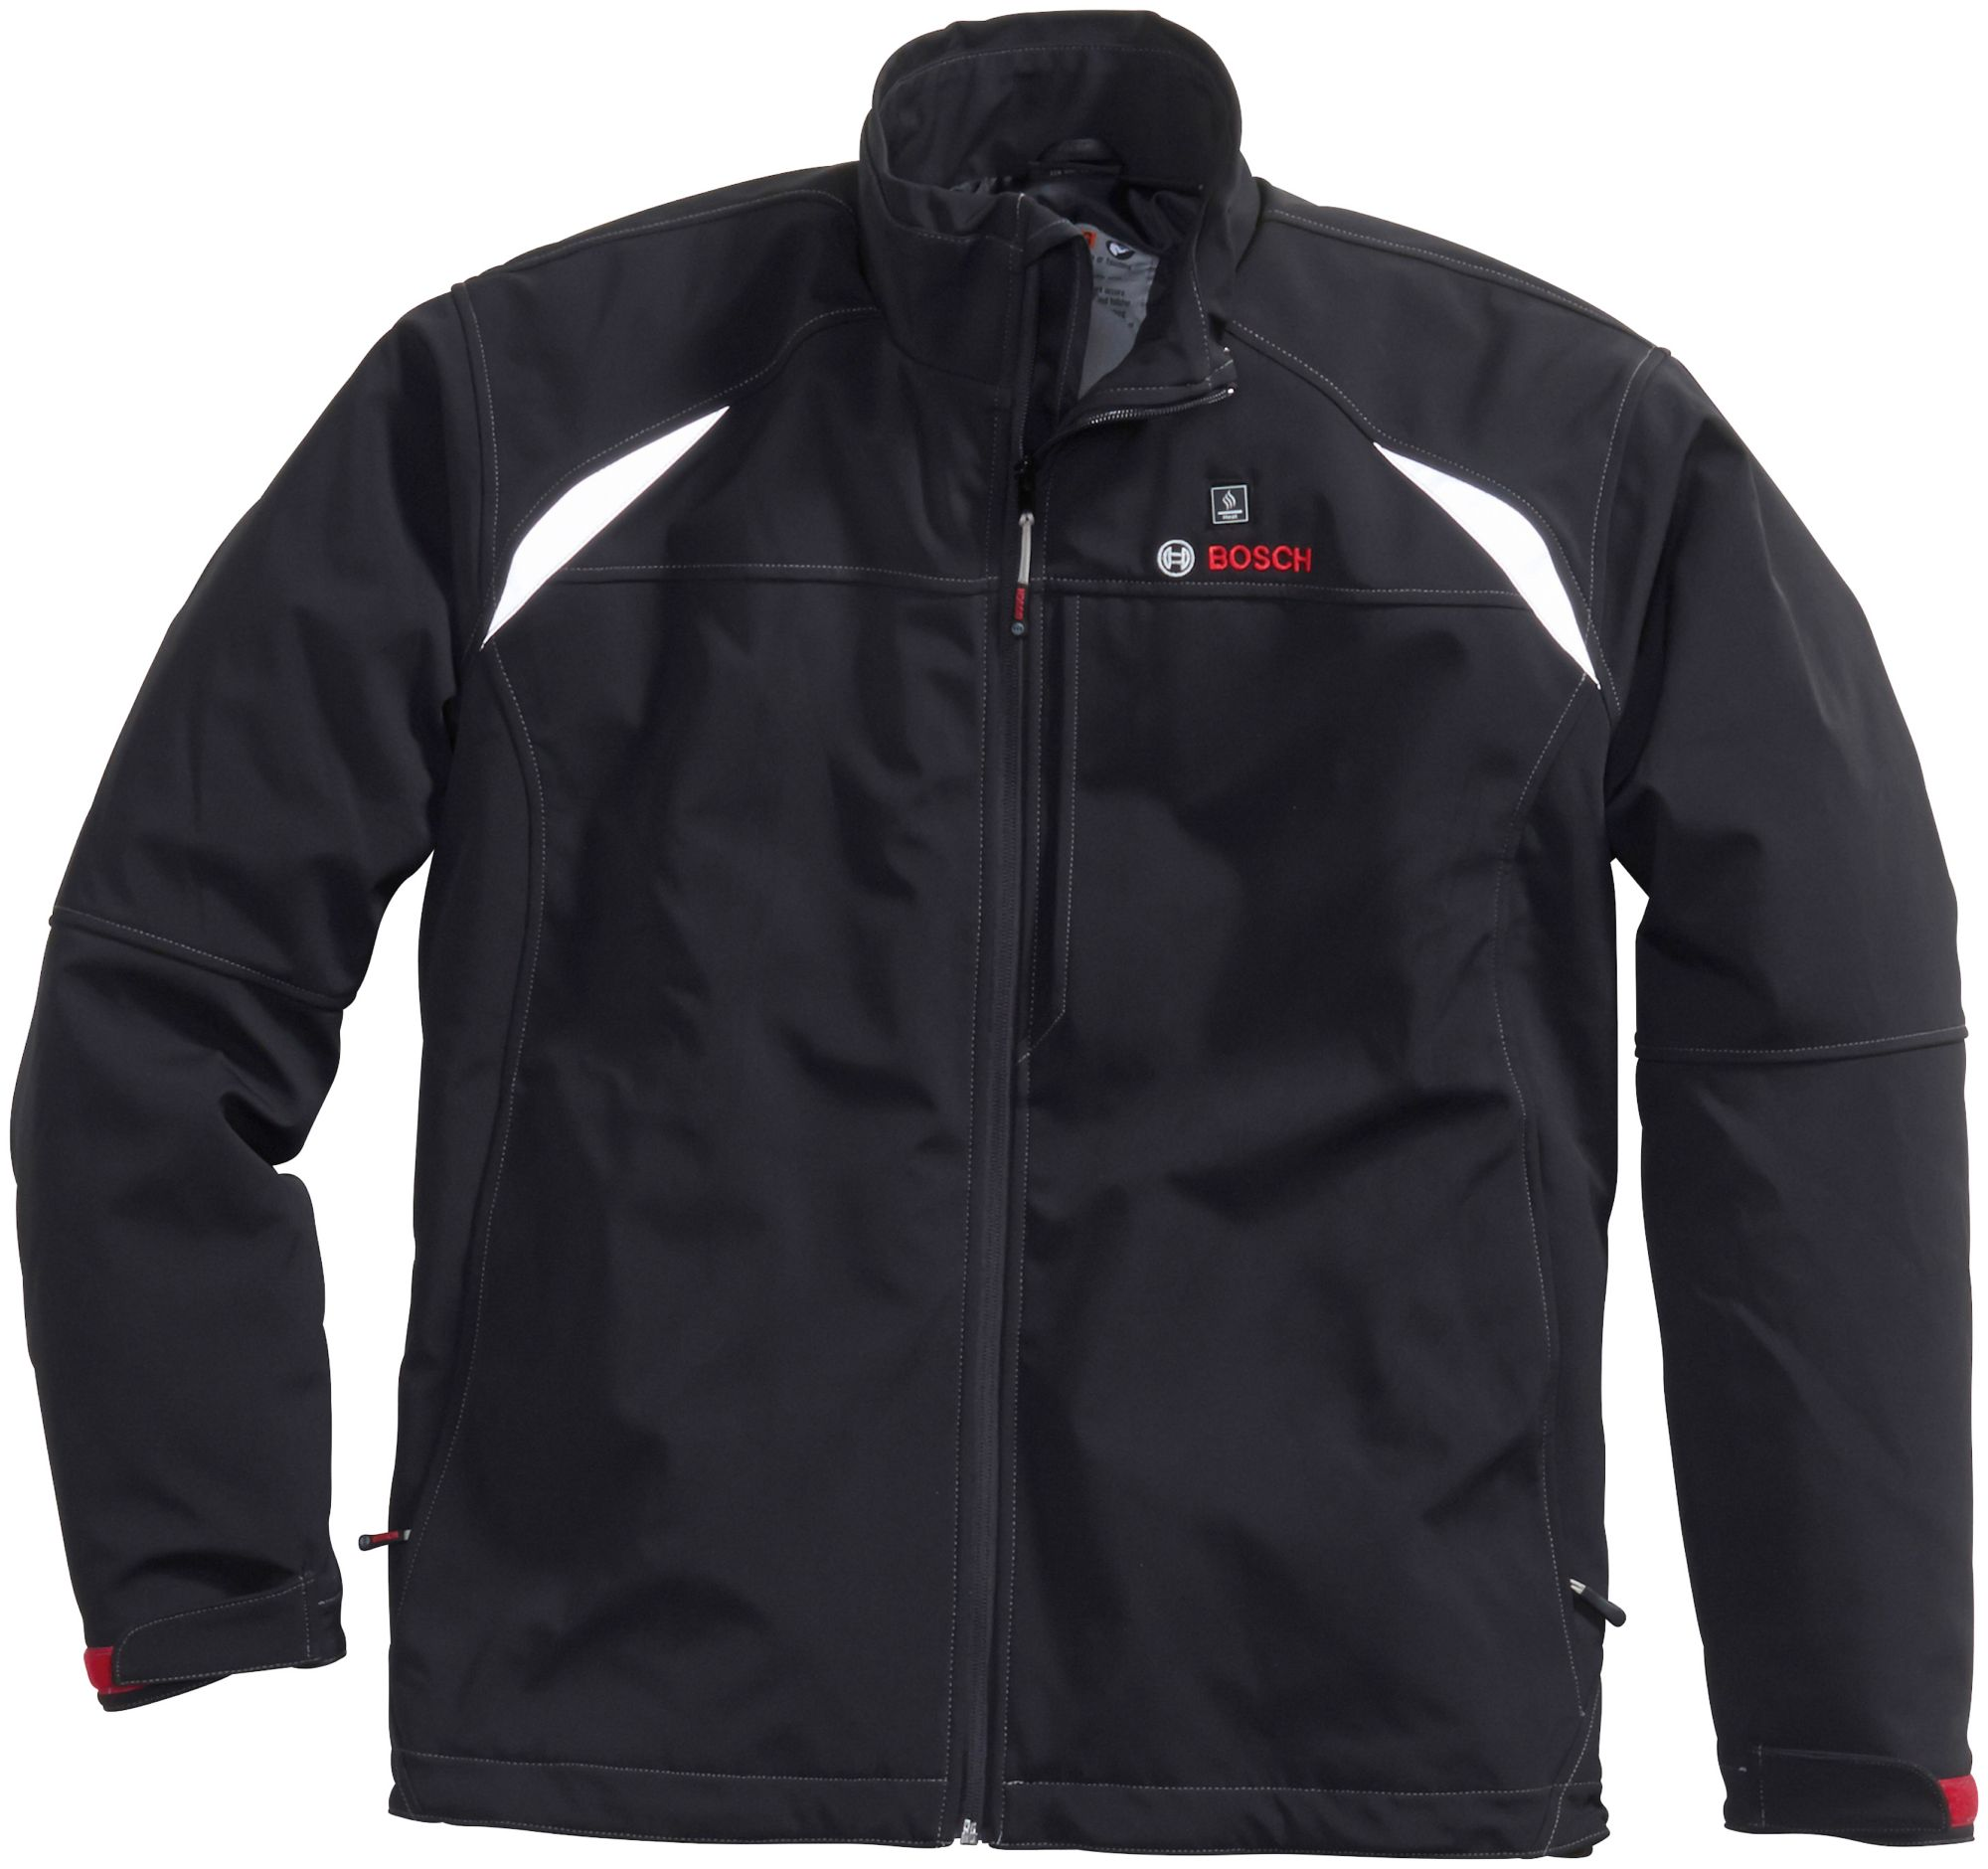 BOSCH Bosch Damen »Heat Jacket«